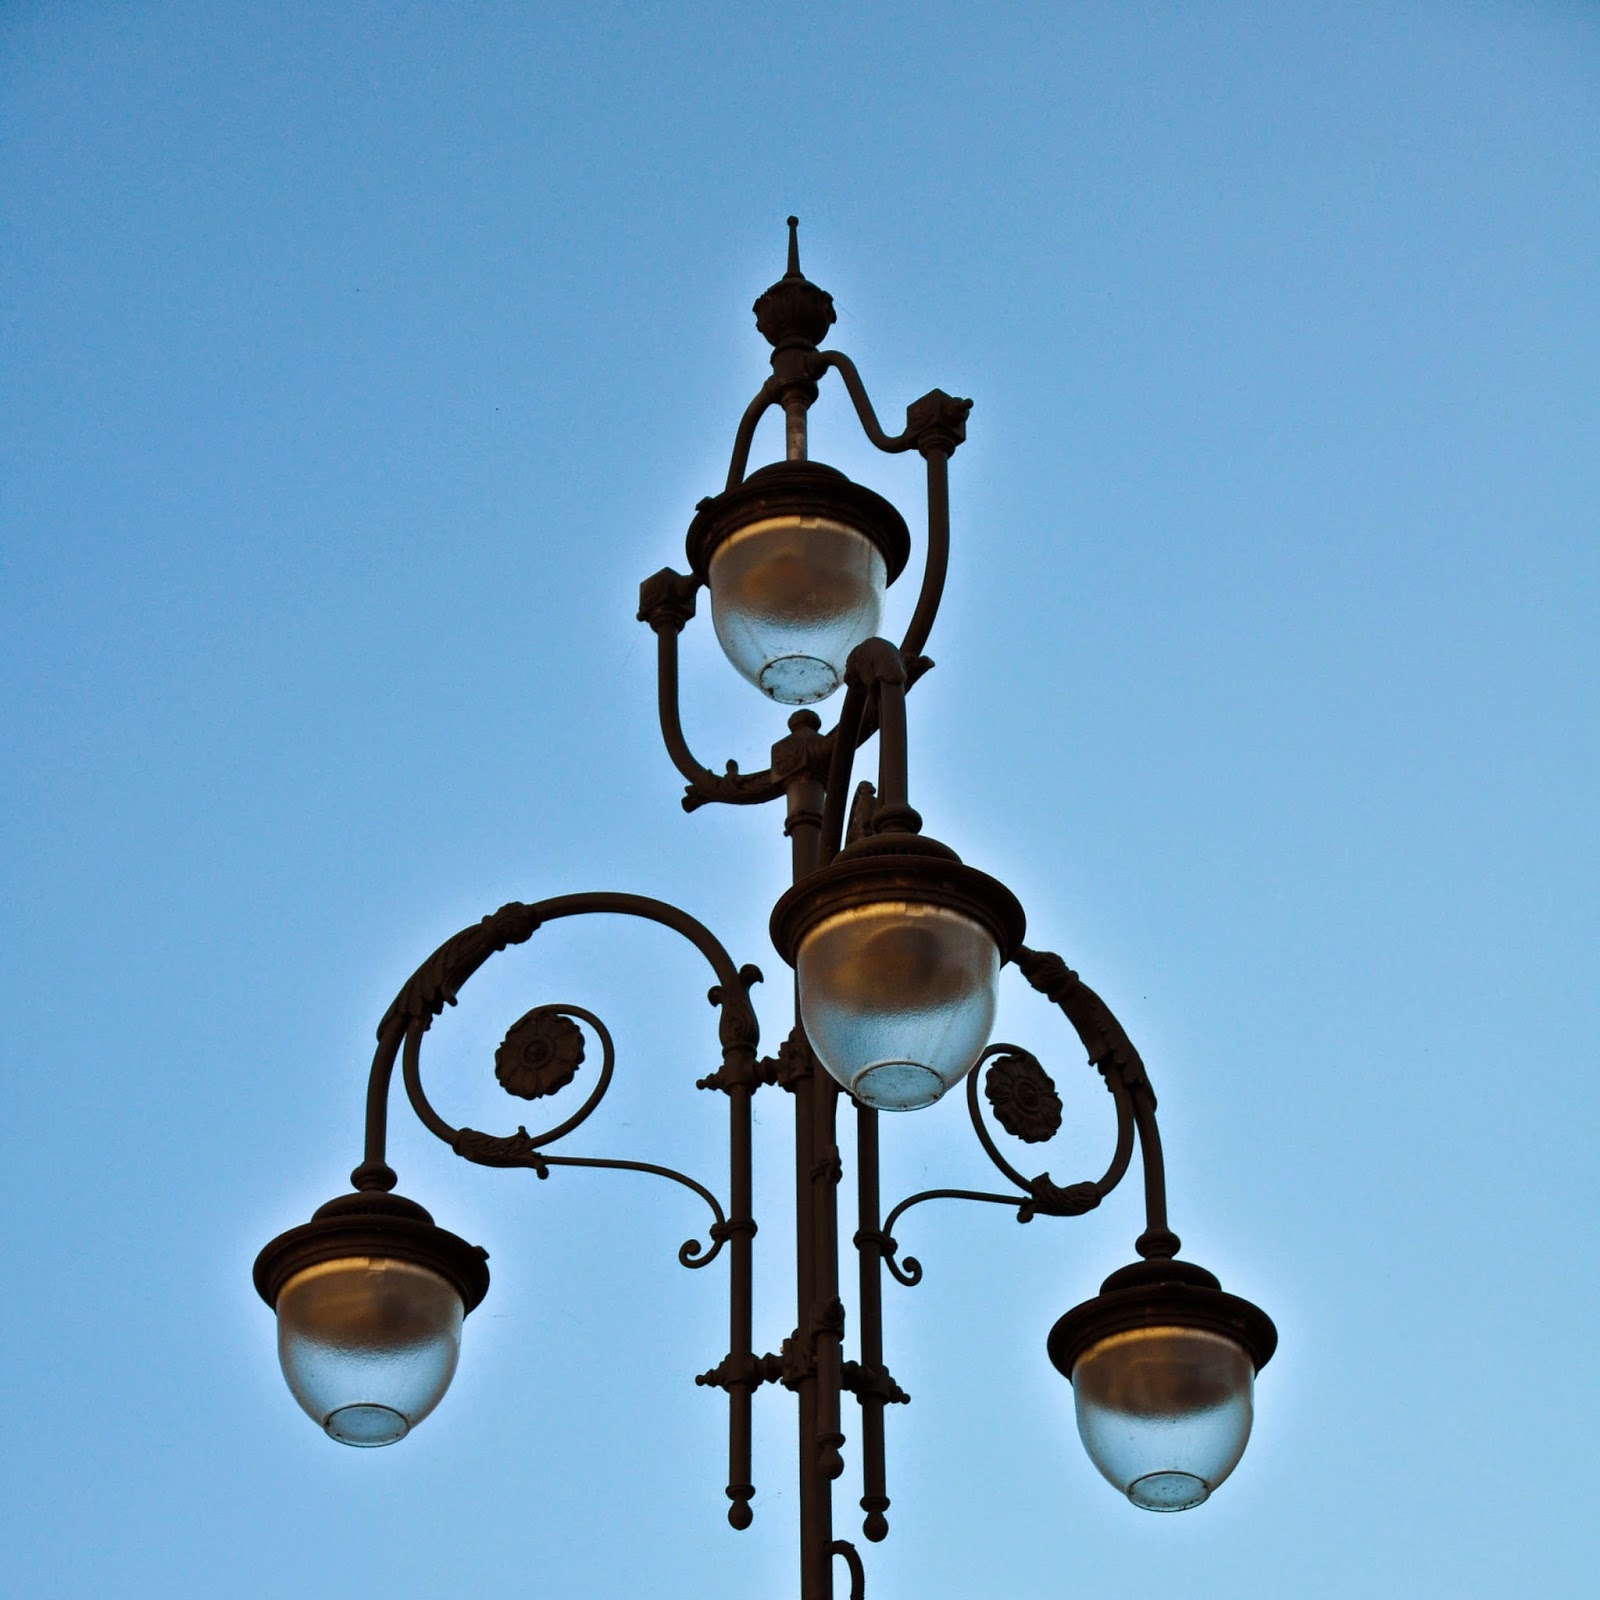 A fabulously whimsical street light in Treviso